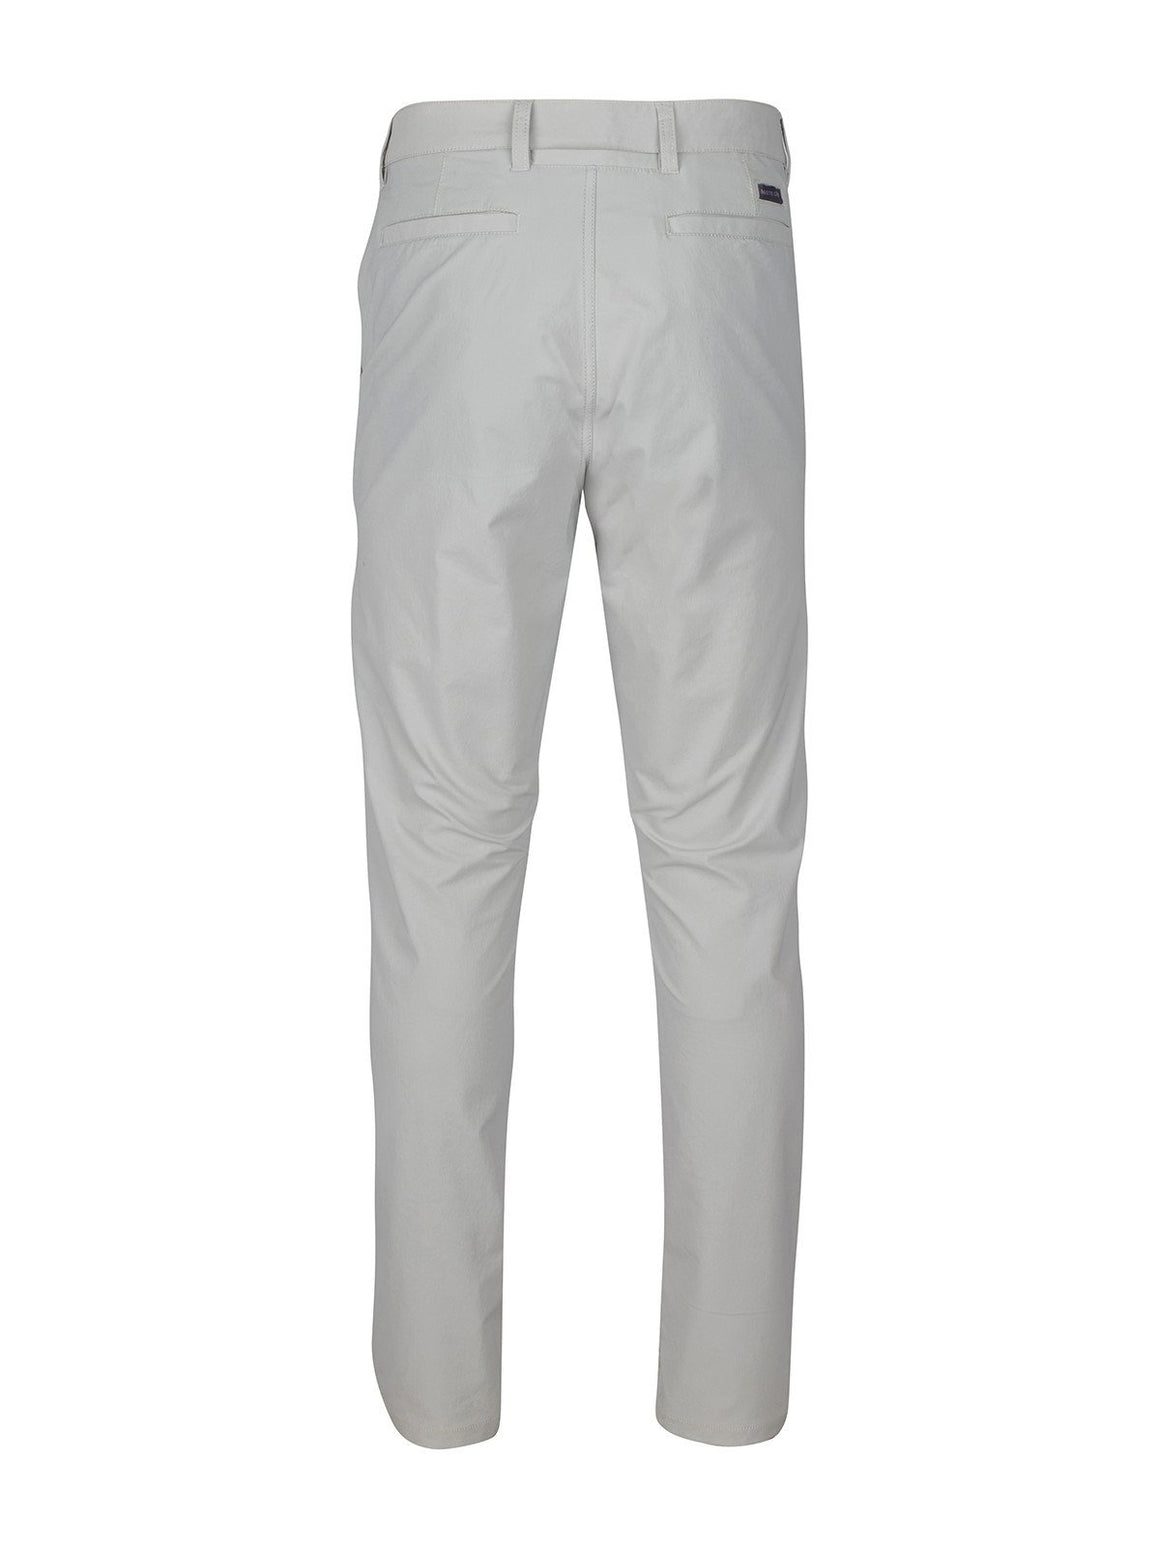 Traveler FIT101 Pant - Chalk